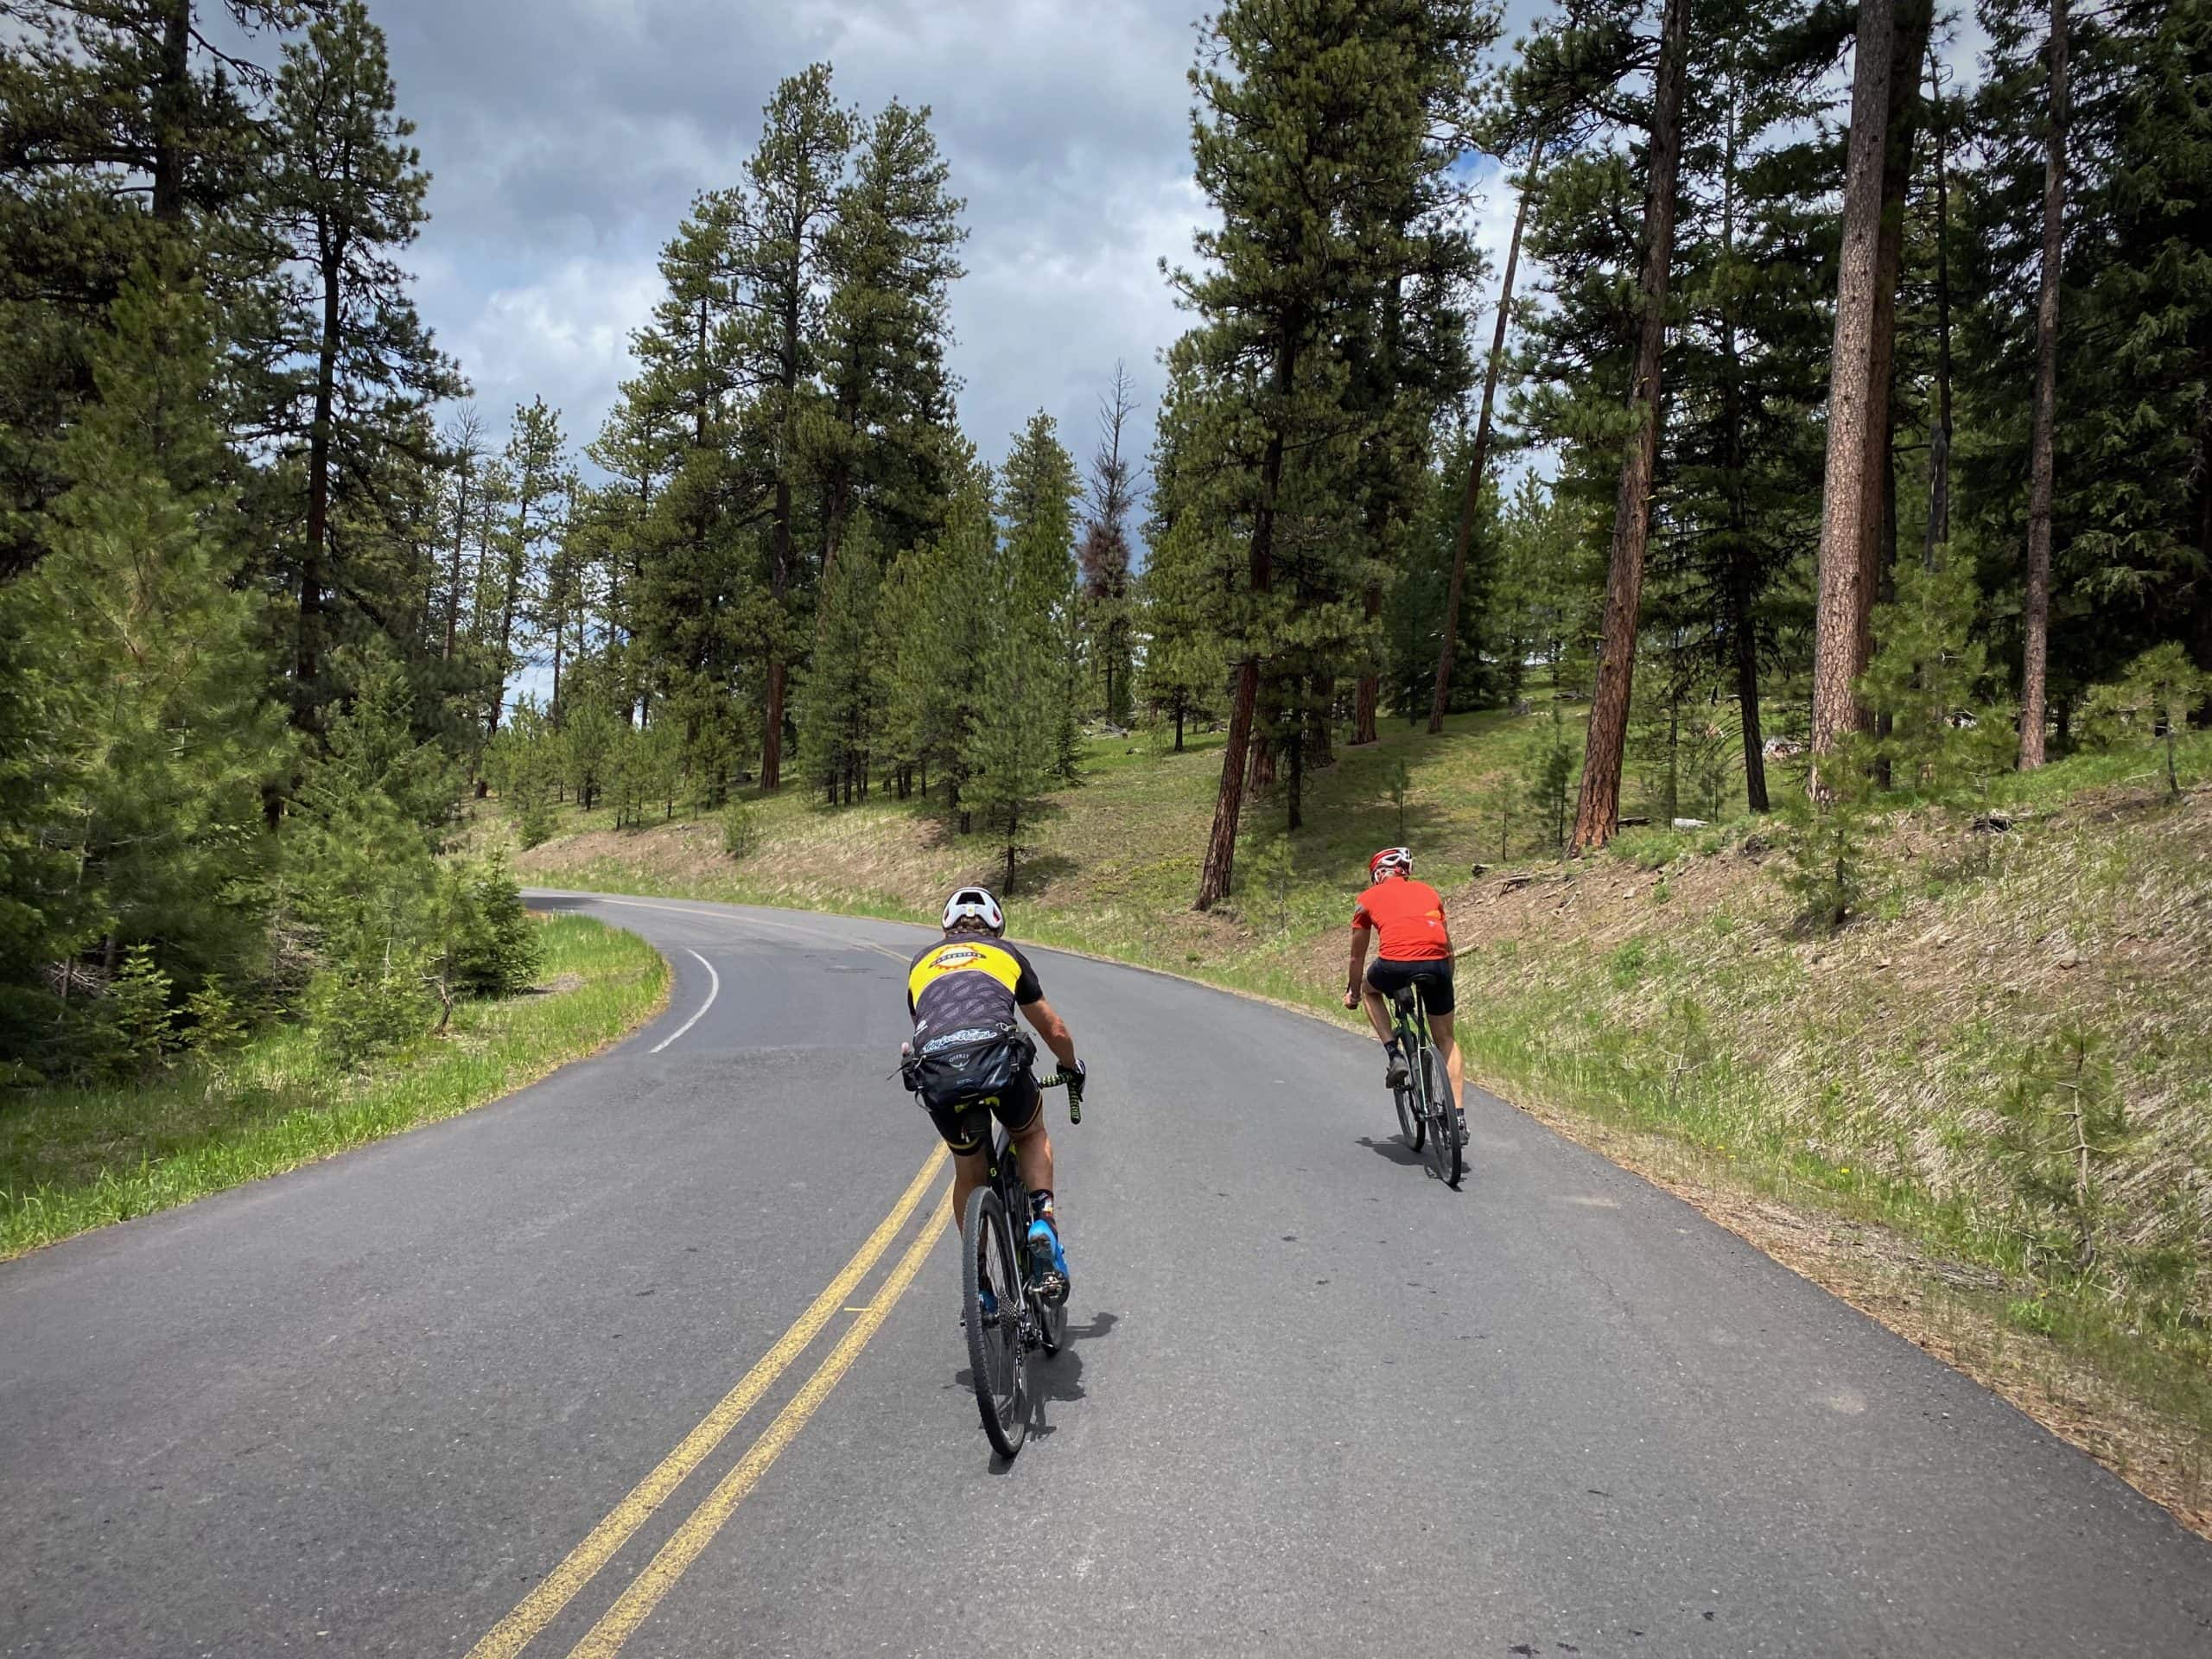 Cyclists descending the paved road from the saddle between Round and Lookout mountains.